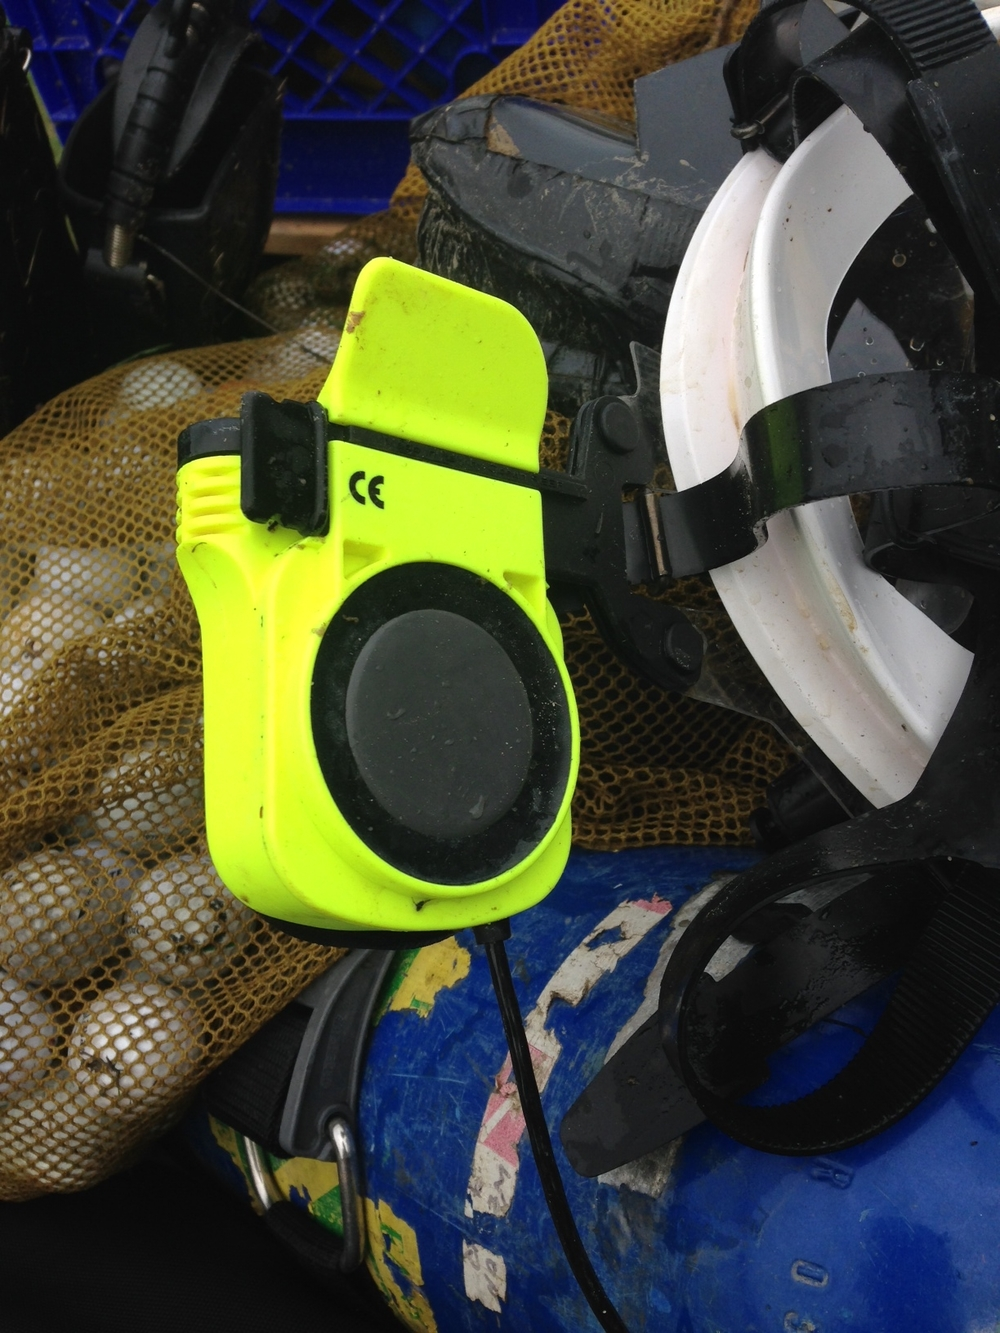 GSM mounted to side of the mask where it rests beside diver's ear